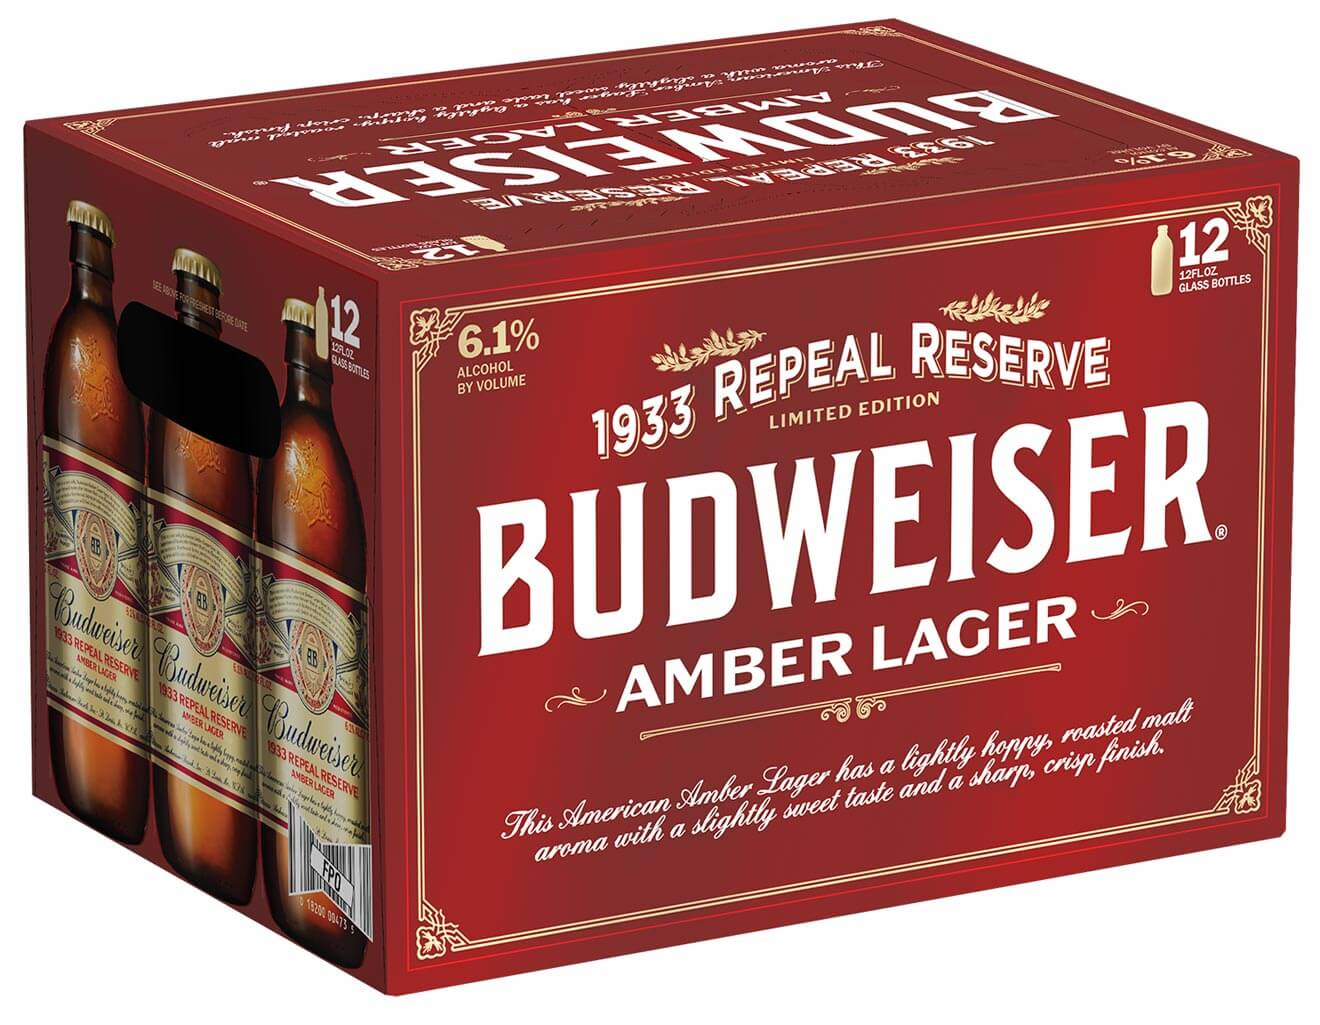 Budweiser 1933 Repeal Reserve Amber Lager Case, package on white